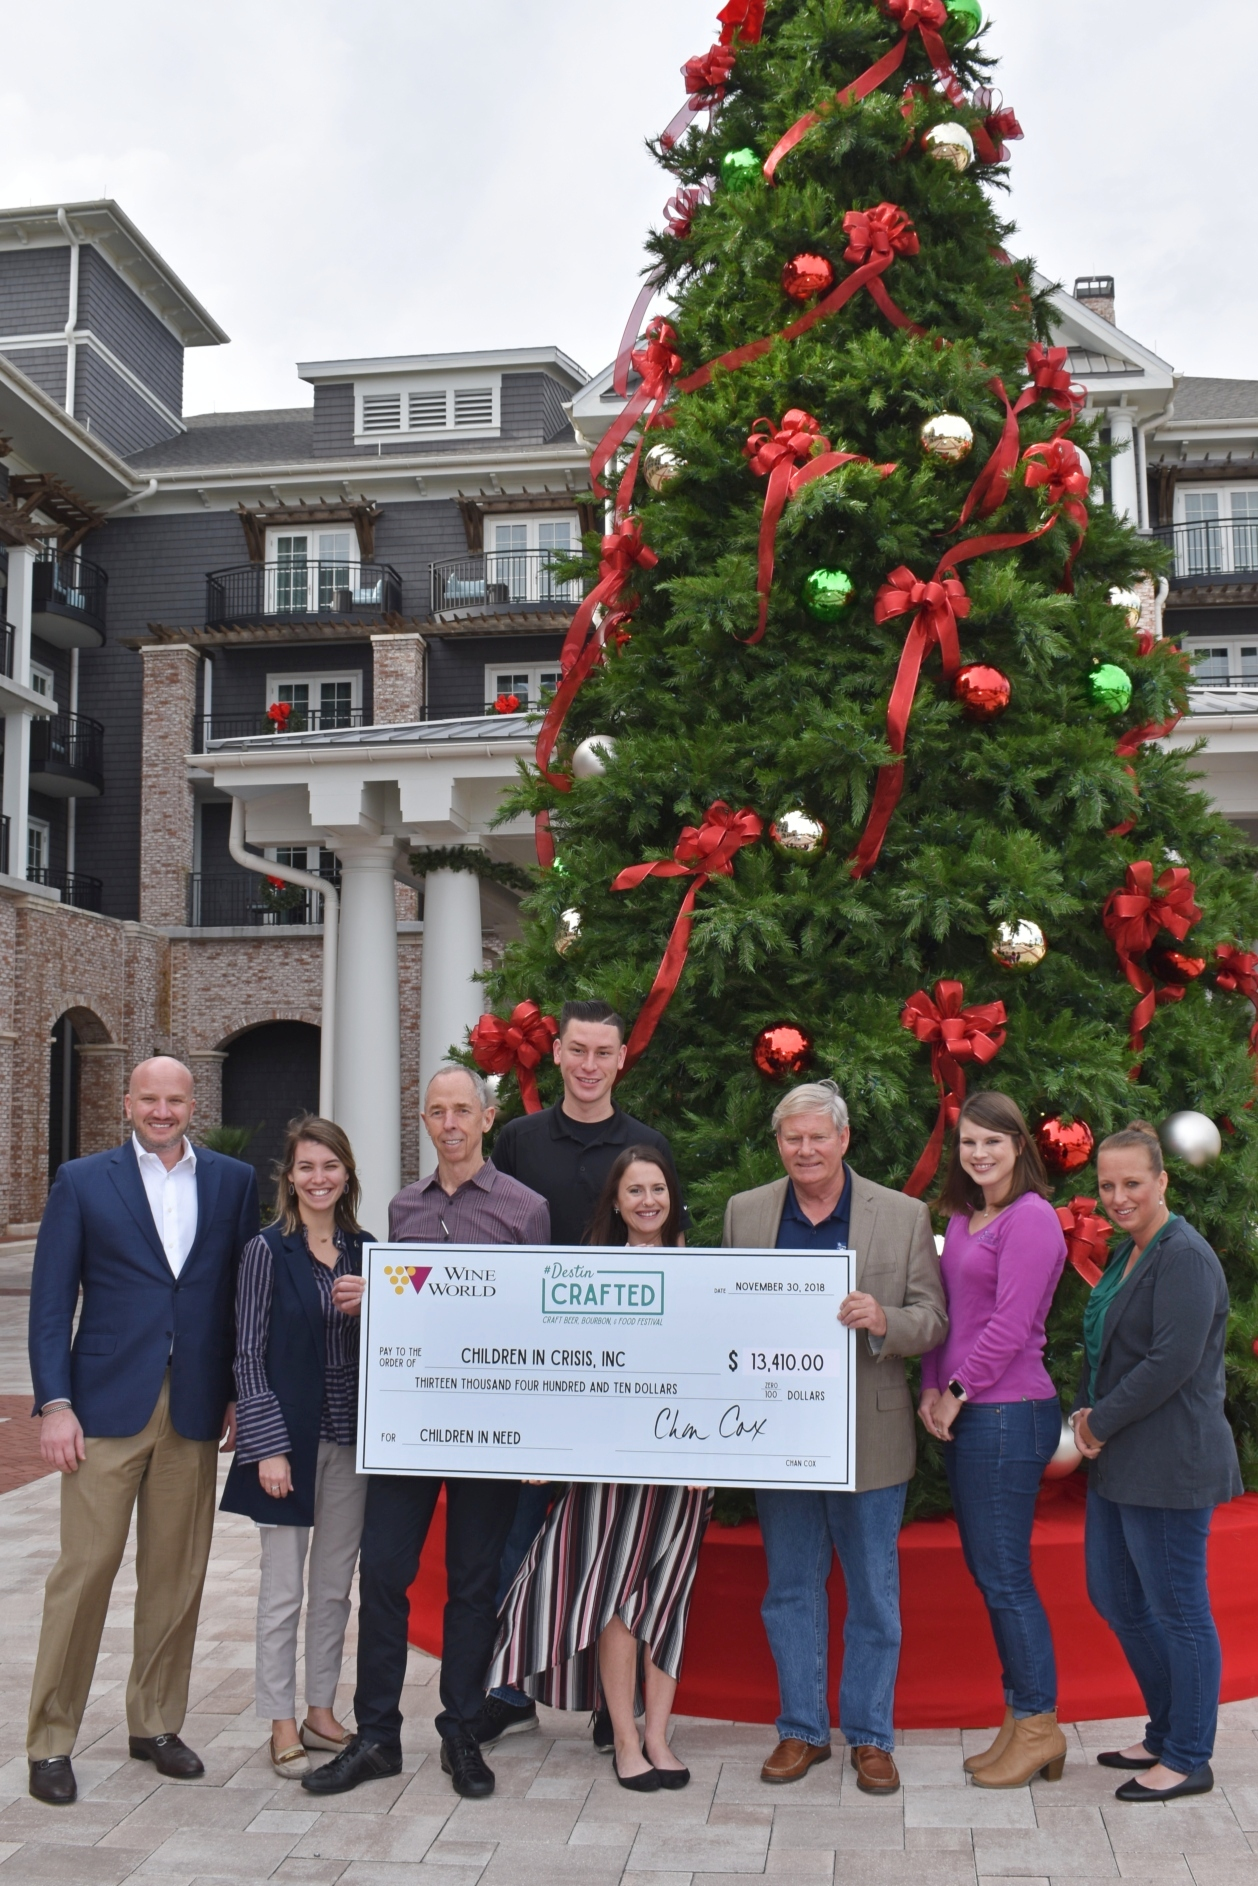 DEC. 2018 - Just in time for the holidays, Wine World & The Henderson present Children in Crisis with funds raised from Destin Crafted